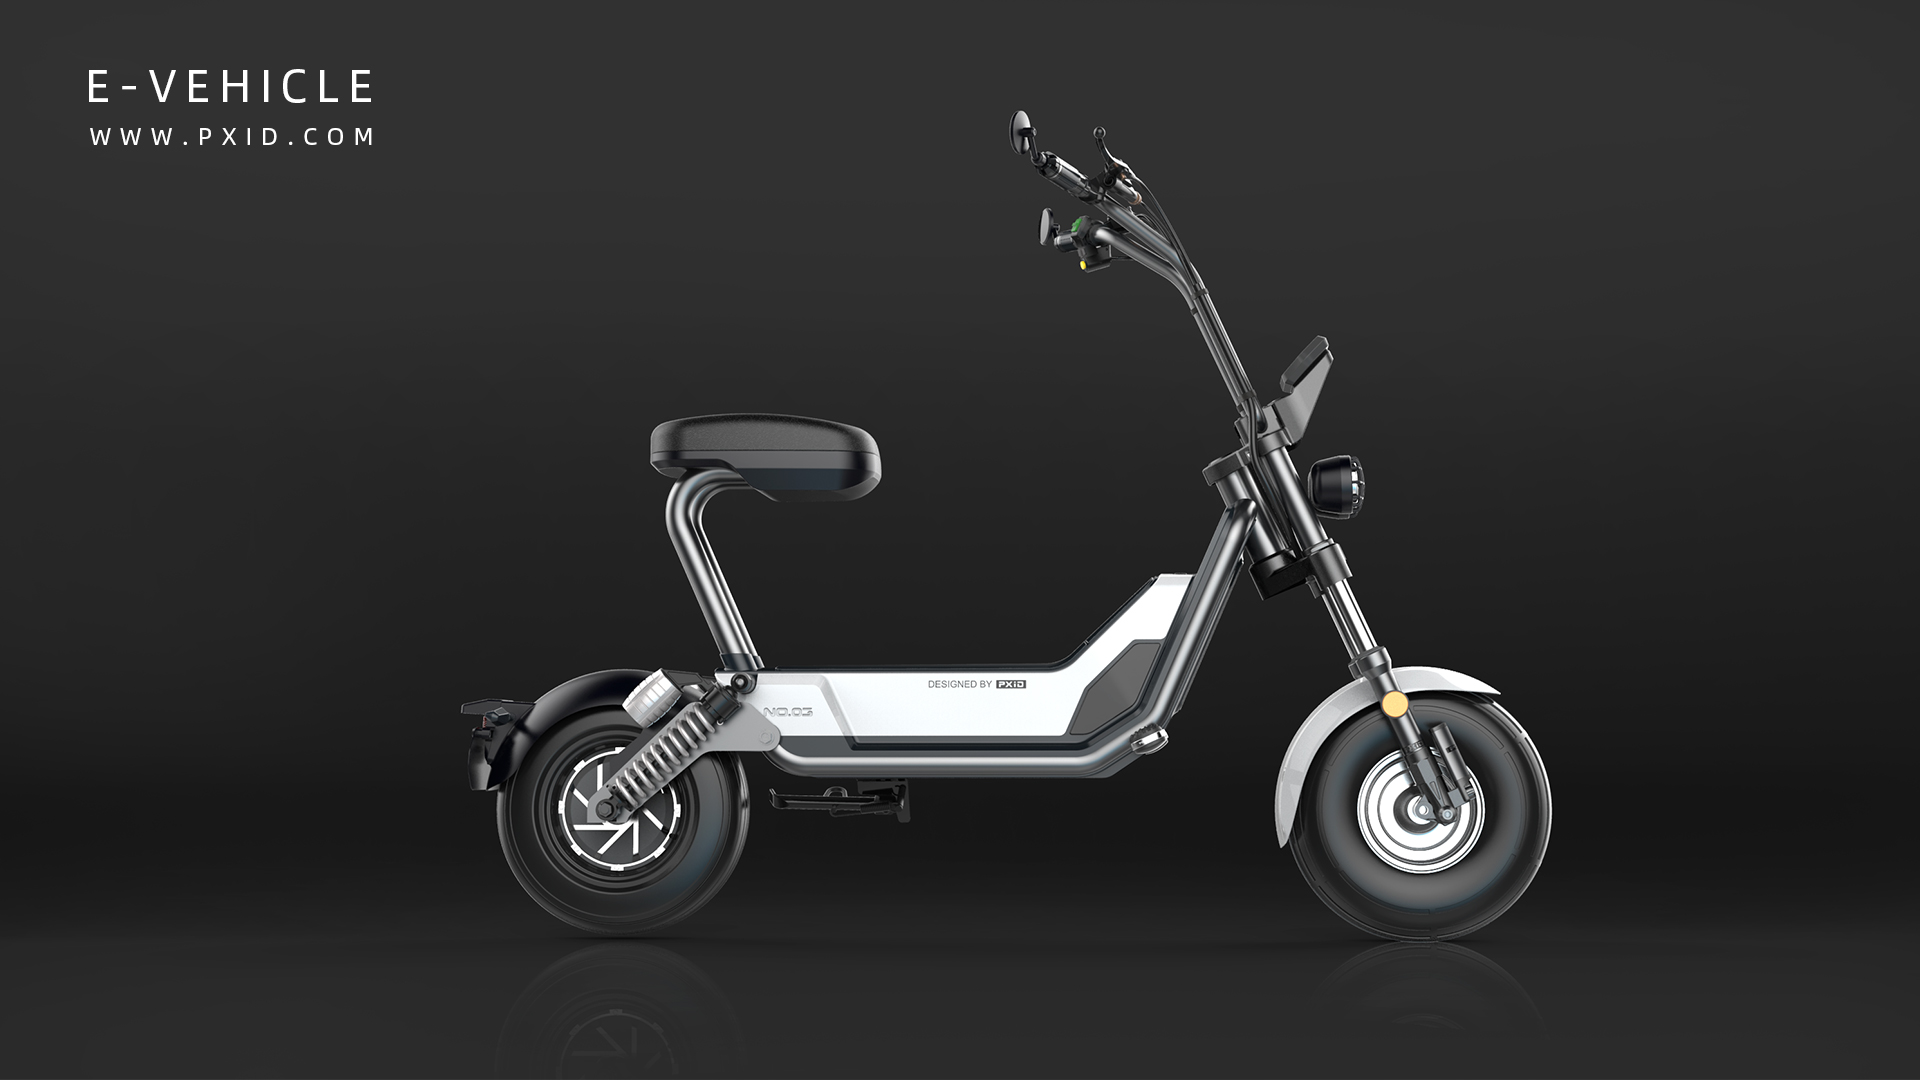 Prediction and Analysis of Regions Used for Low-Power Electric Scooters and Electric Motorcycles from 2020-2024